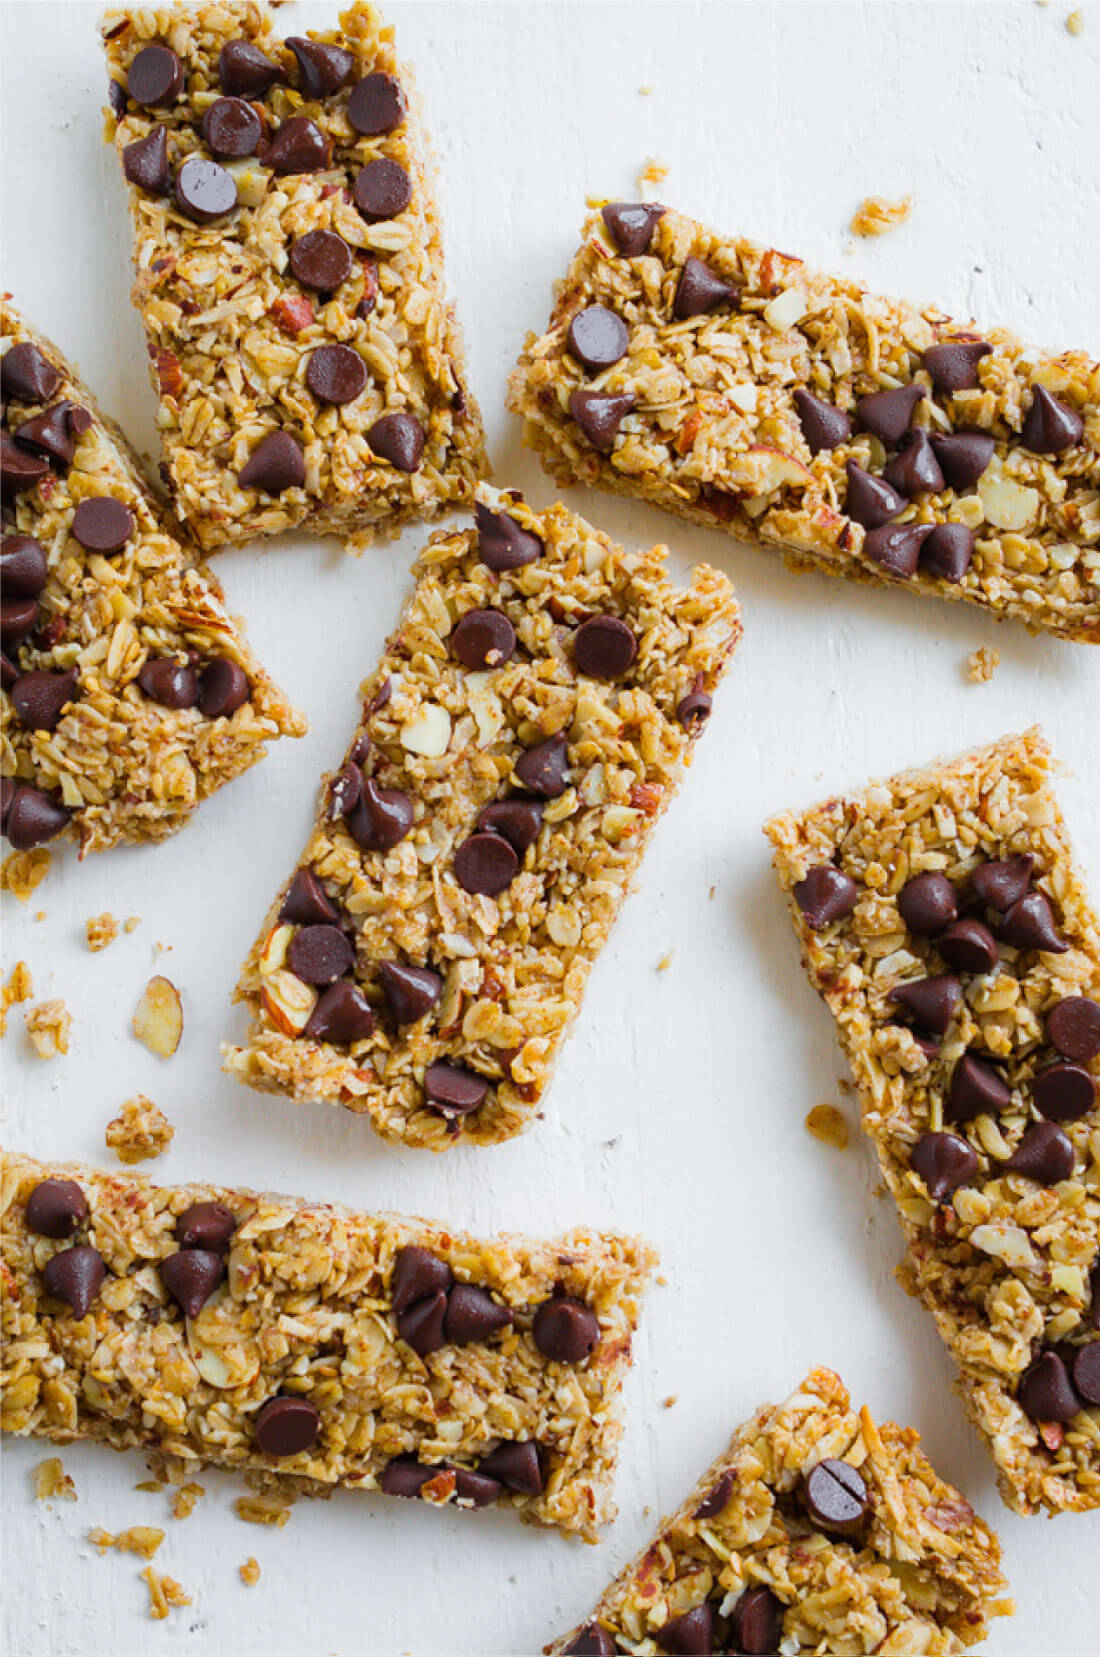 Homemade Granola Bars Recipe -way better than the store bought version. These taste amazing! Worth a little bit of effort.